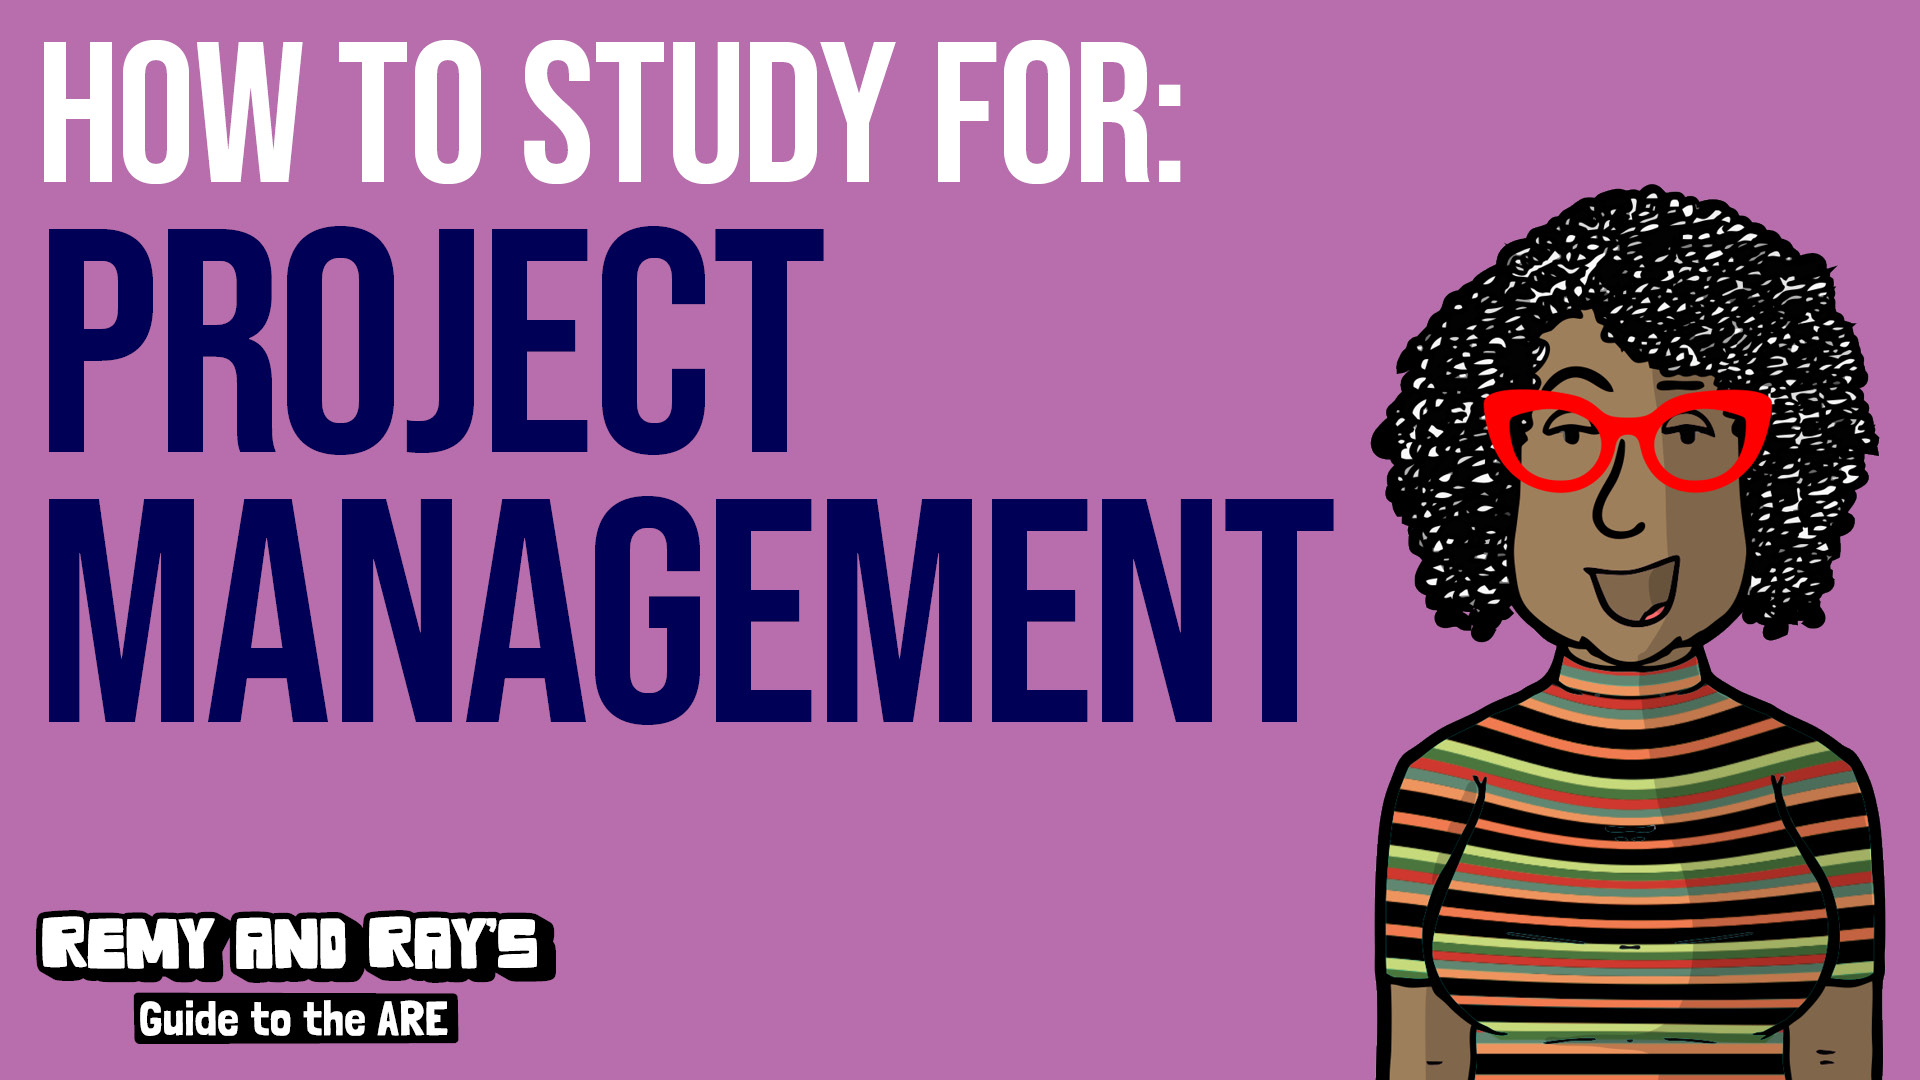 How to study for the Project Management division of the ARE